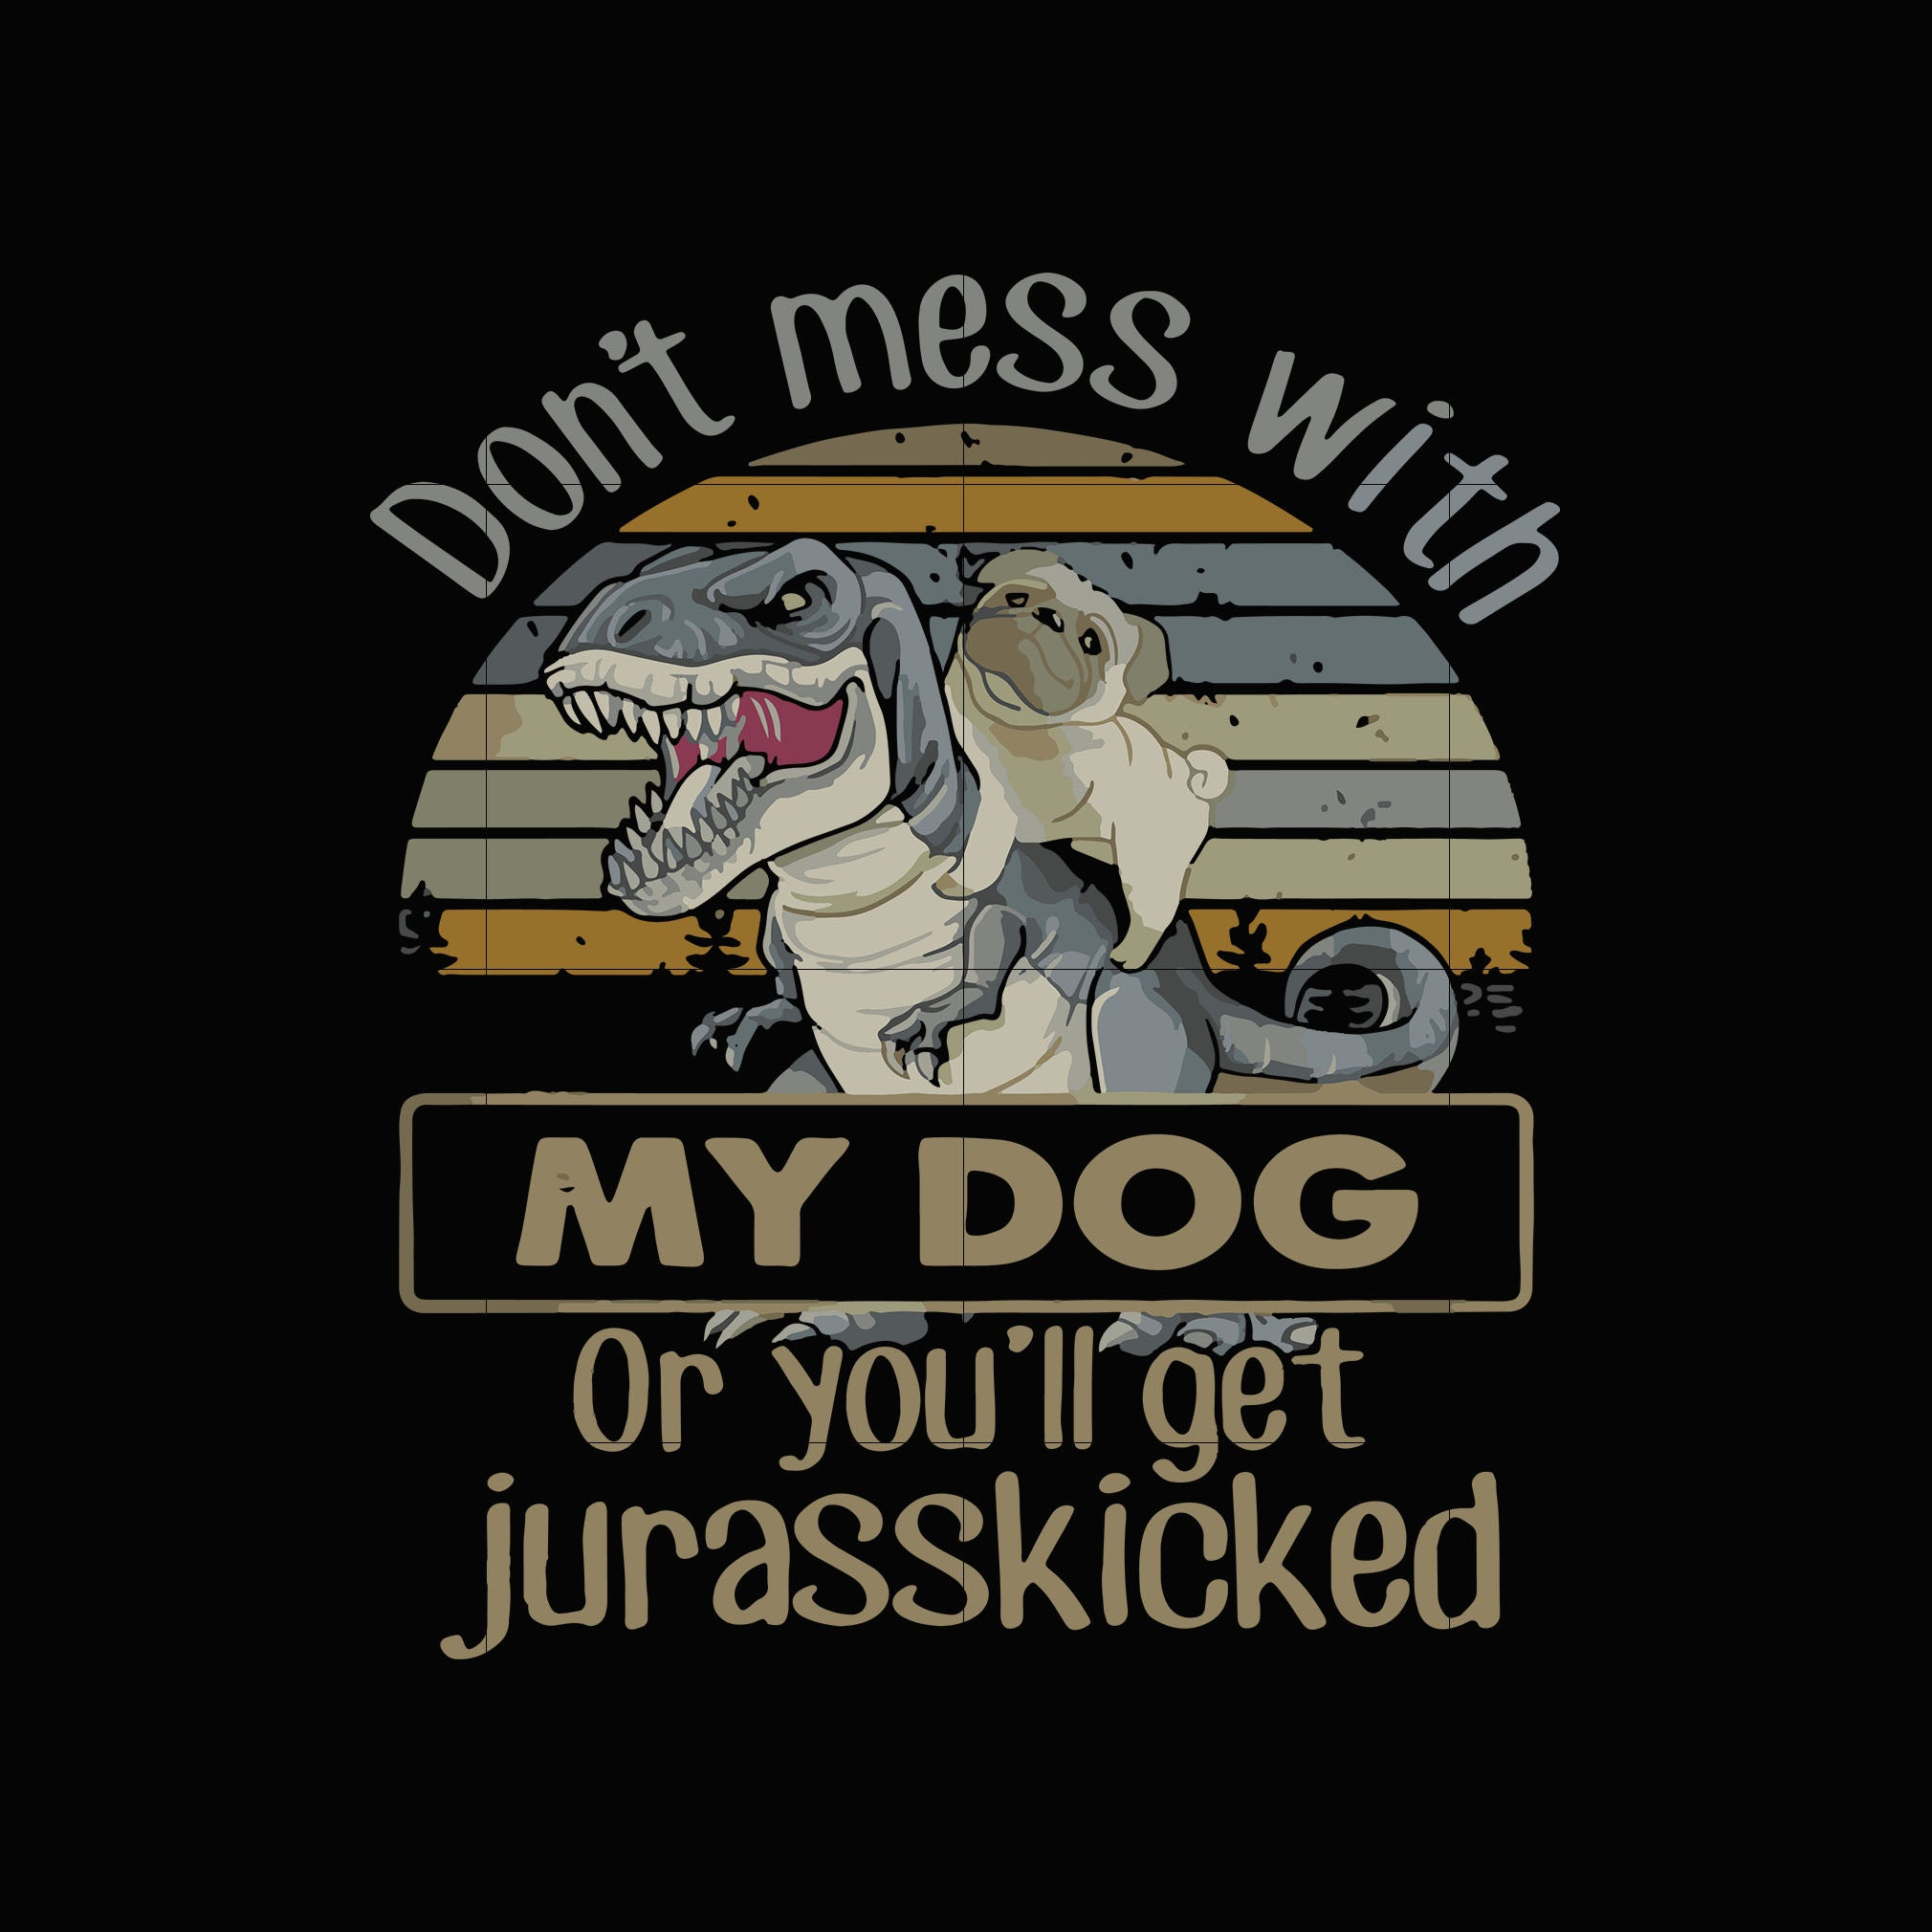 Don't mess with my dog or you'll get jurasskicked svg ,dxf,eps,png digital file